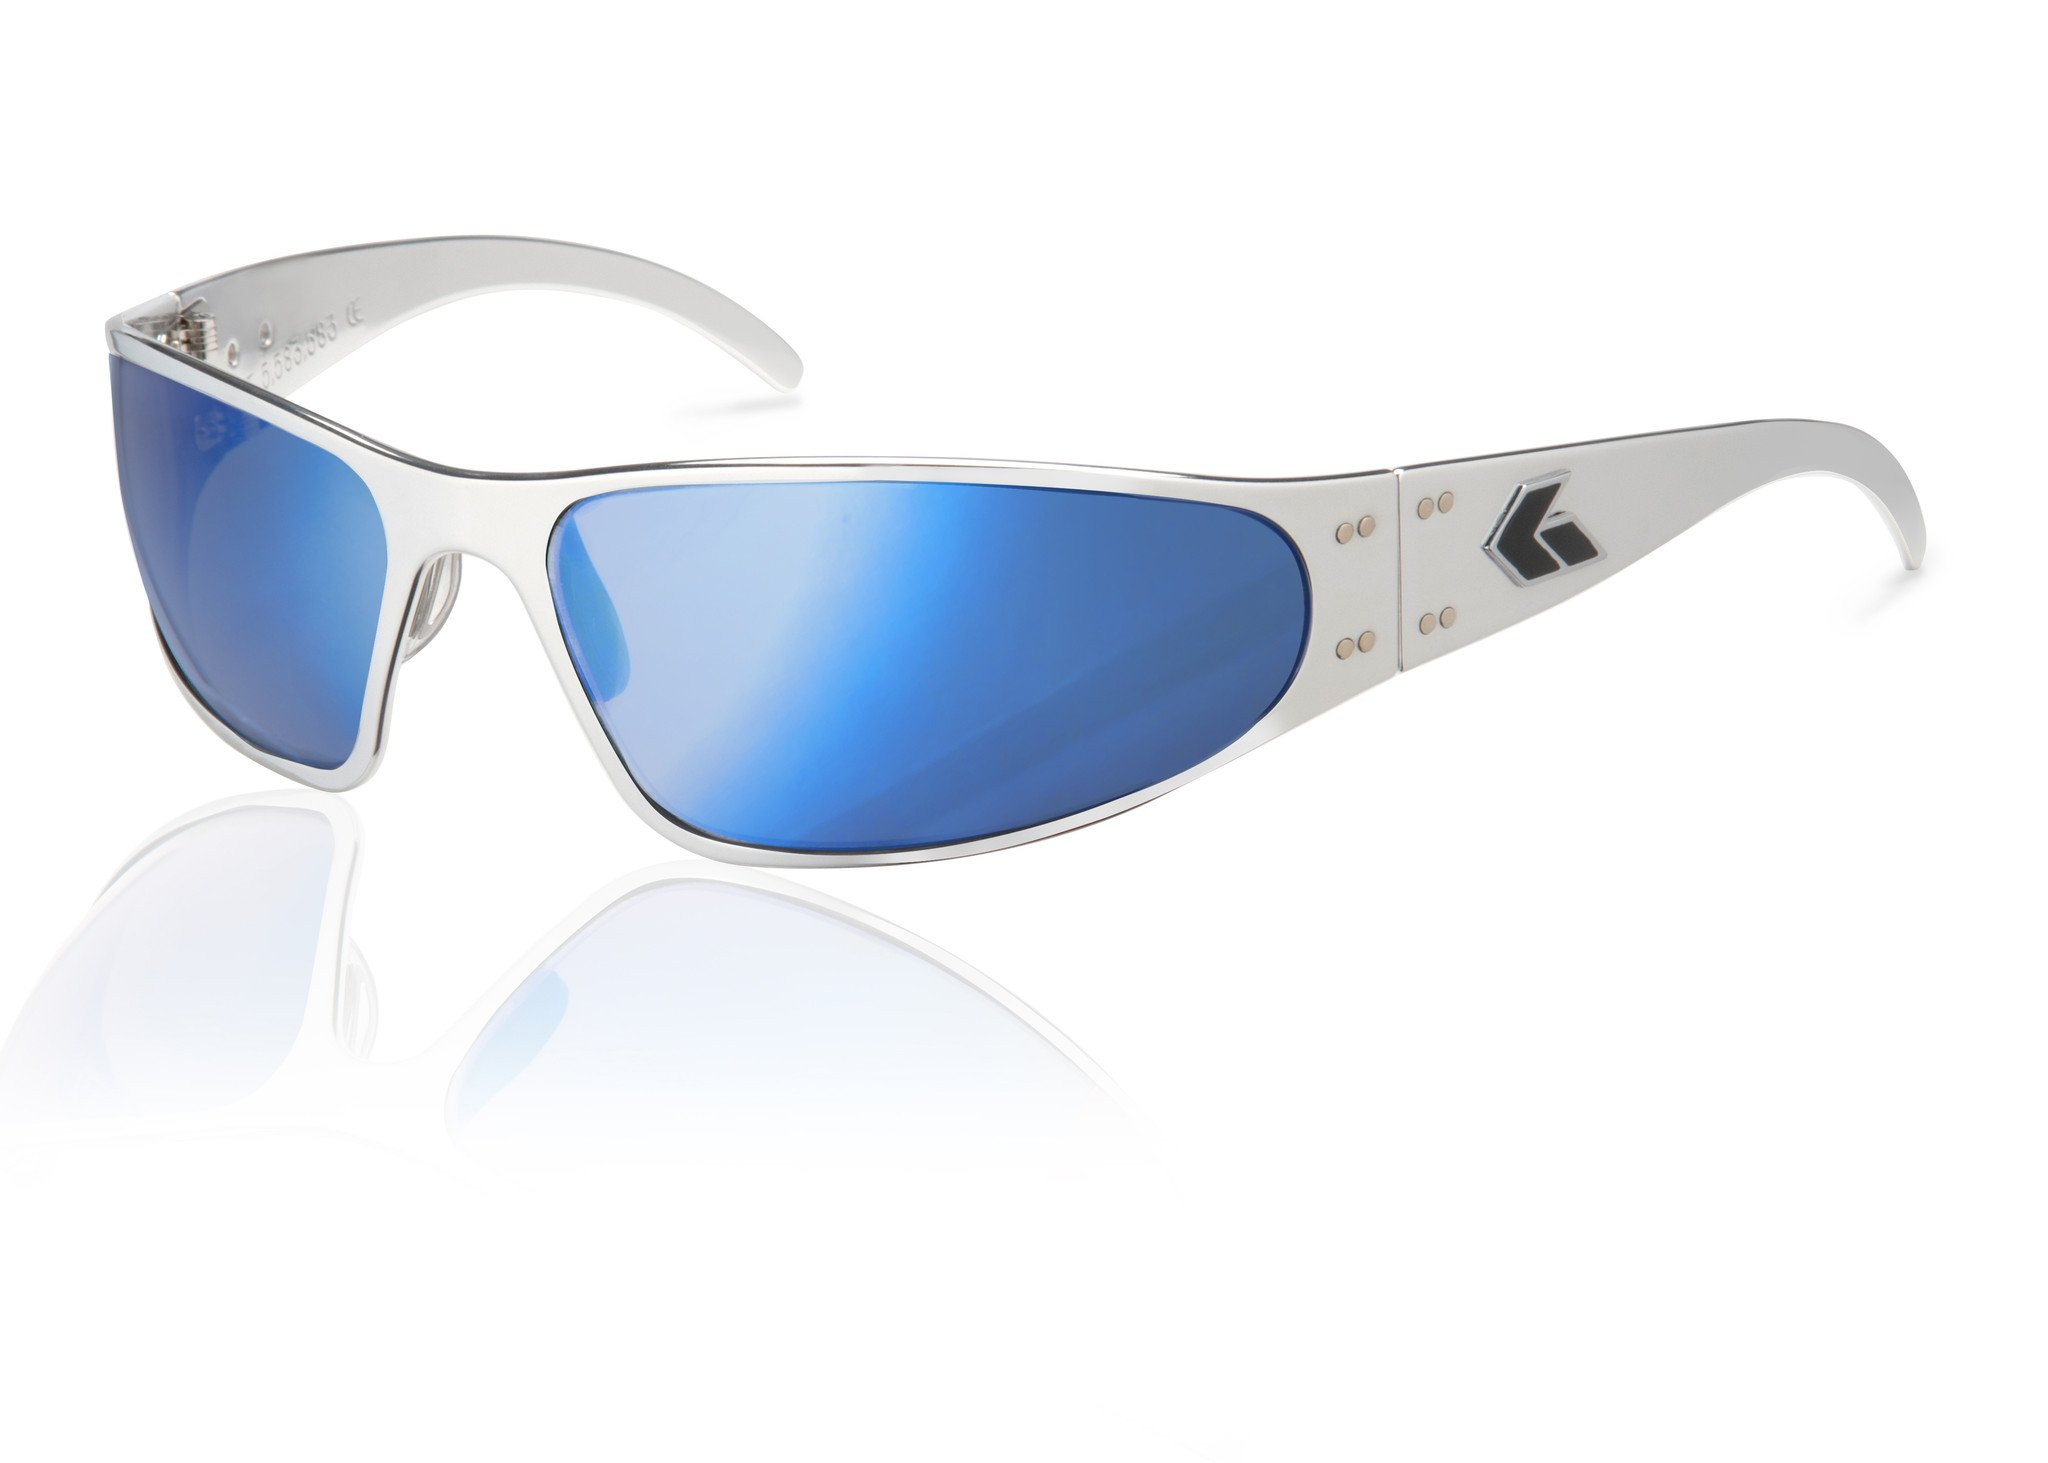 Gatorz Eyewear, Wraptor Model, Aluminum Frame Sunglasses - Polish/Smoked w/ Blue Mirror Lens by Gatorz